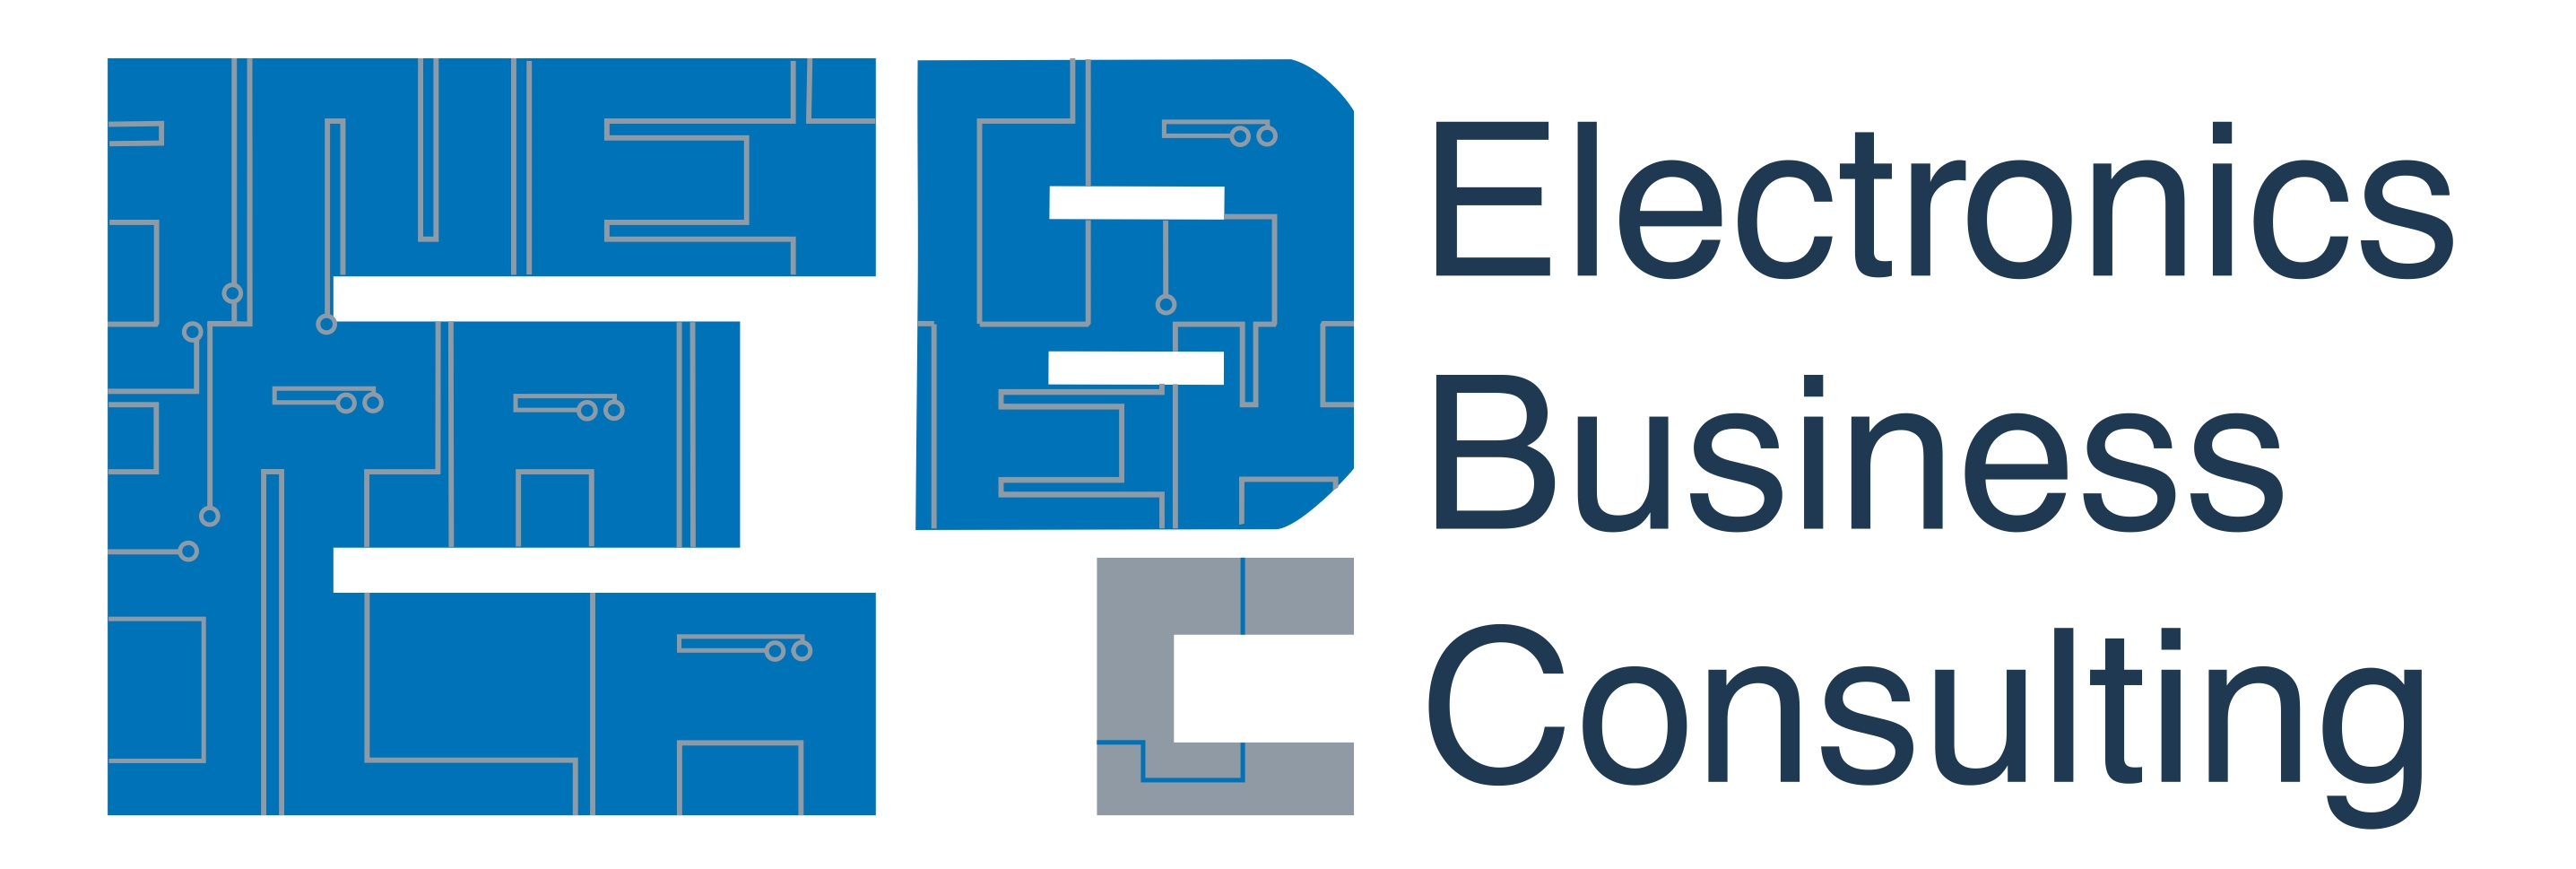 Elektronics Business Consulting